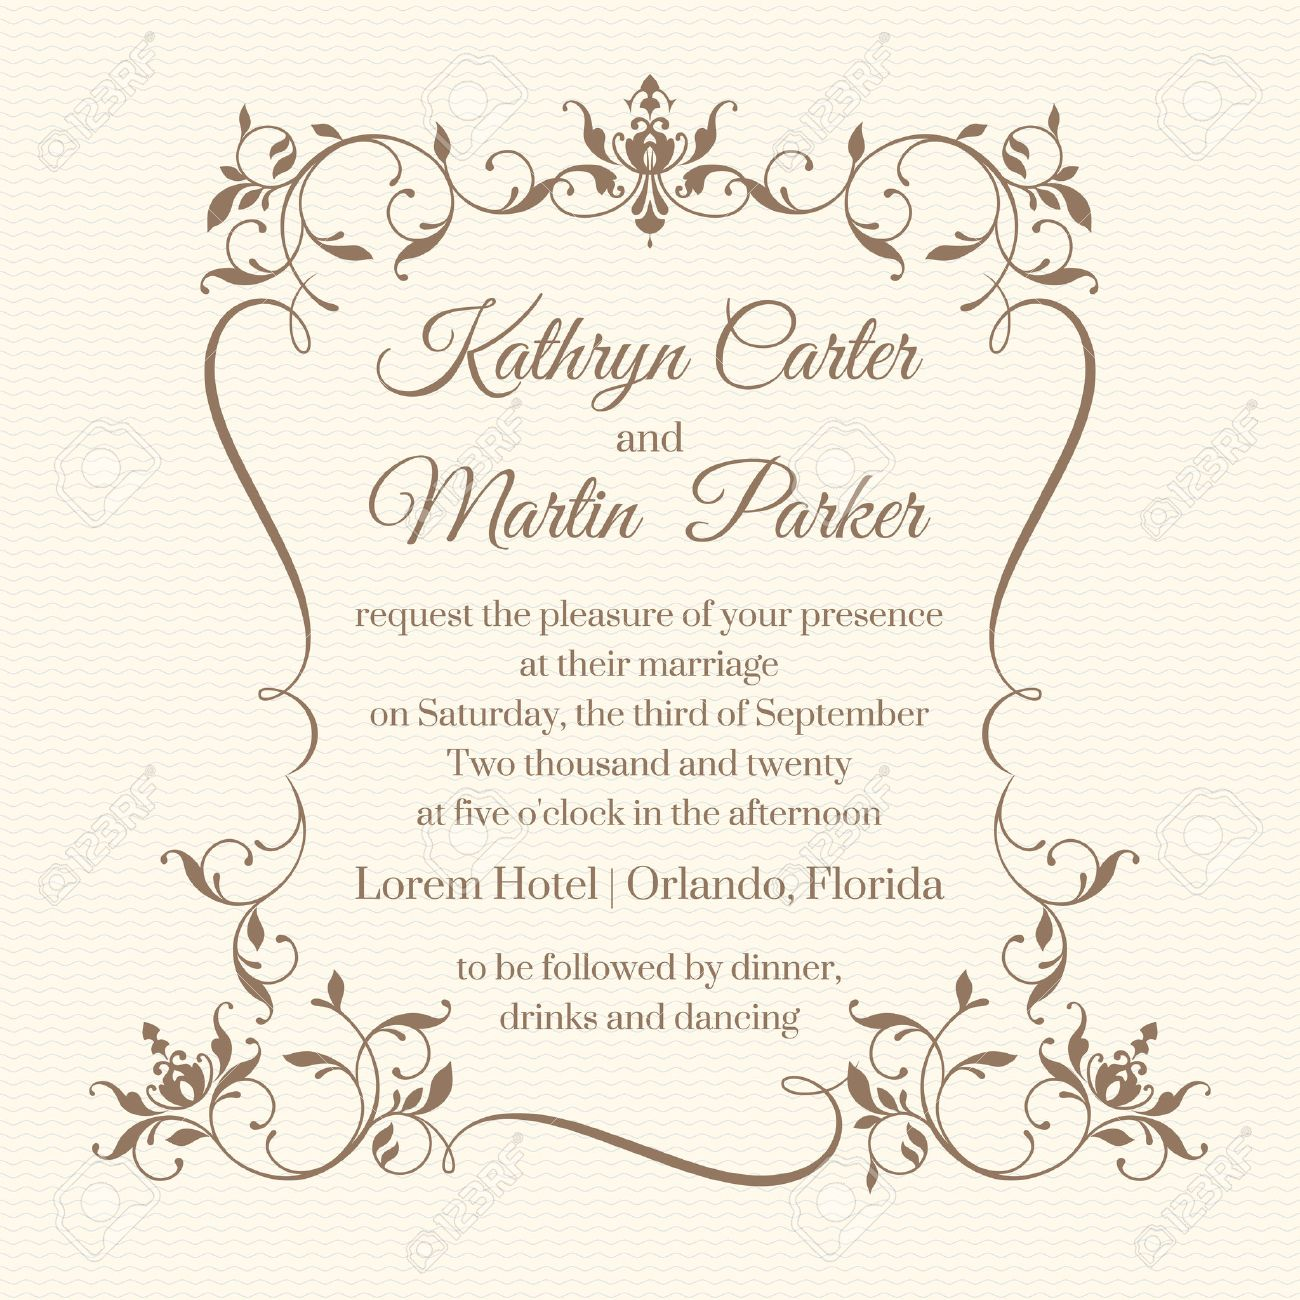 Wedding invitation. Design classic cards. Decorative floral frame. Template for greeting cards, invitations. Graphic design page. - 52539741